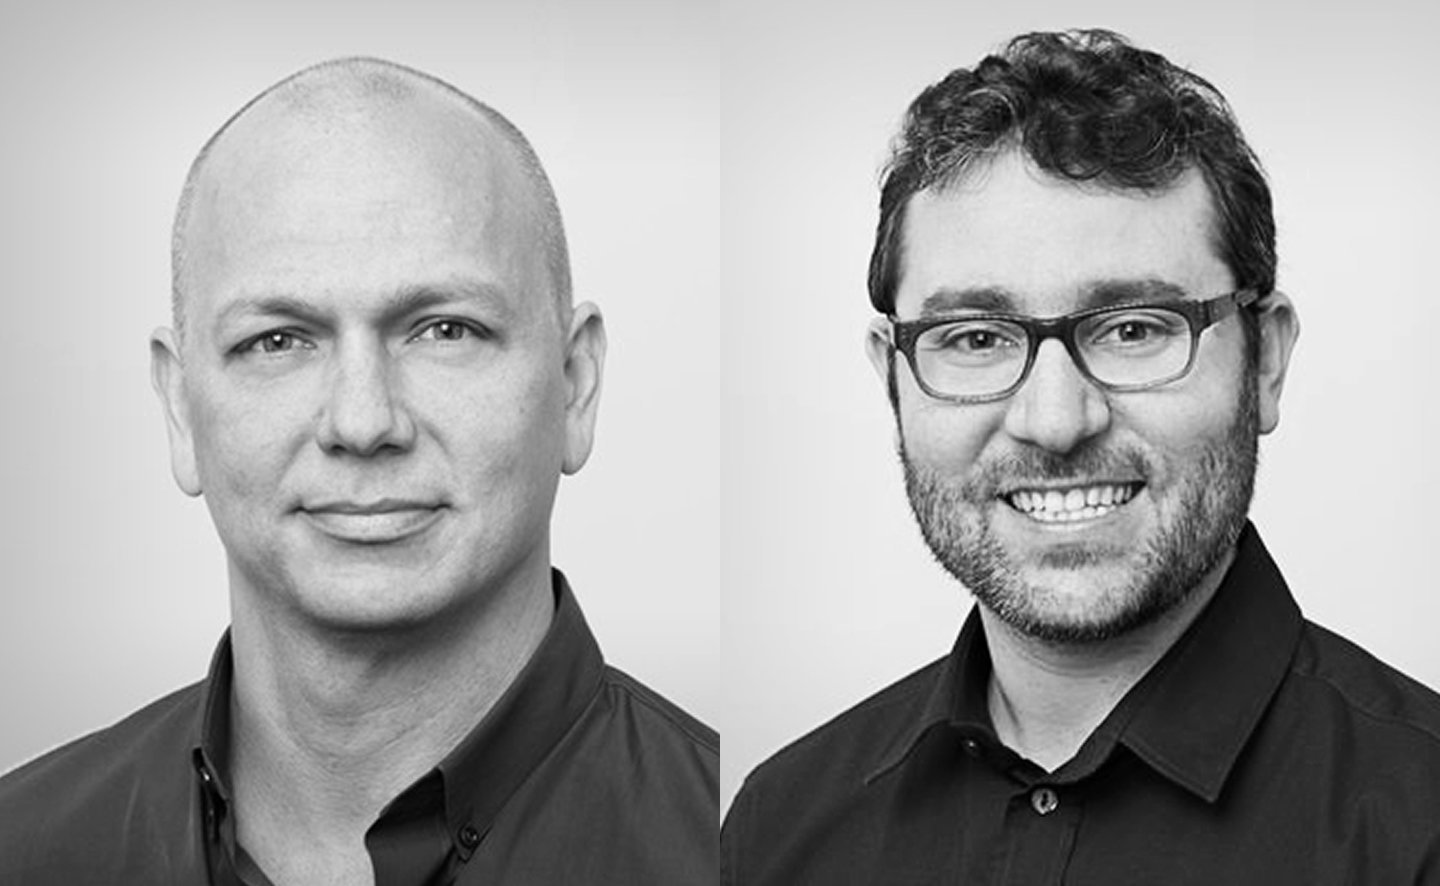 Founders: Tony Fadell, Matt Rogers